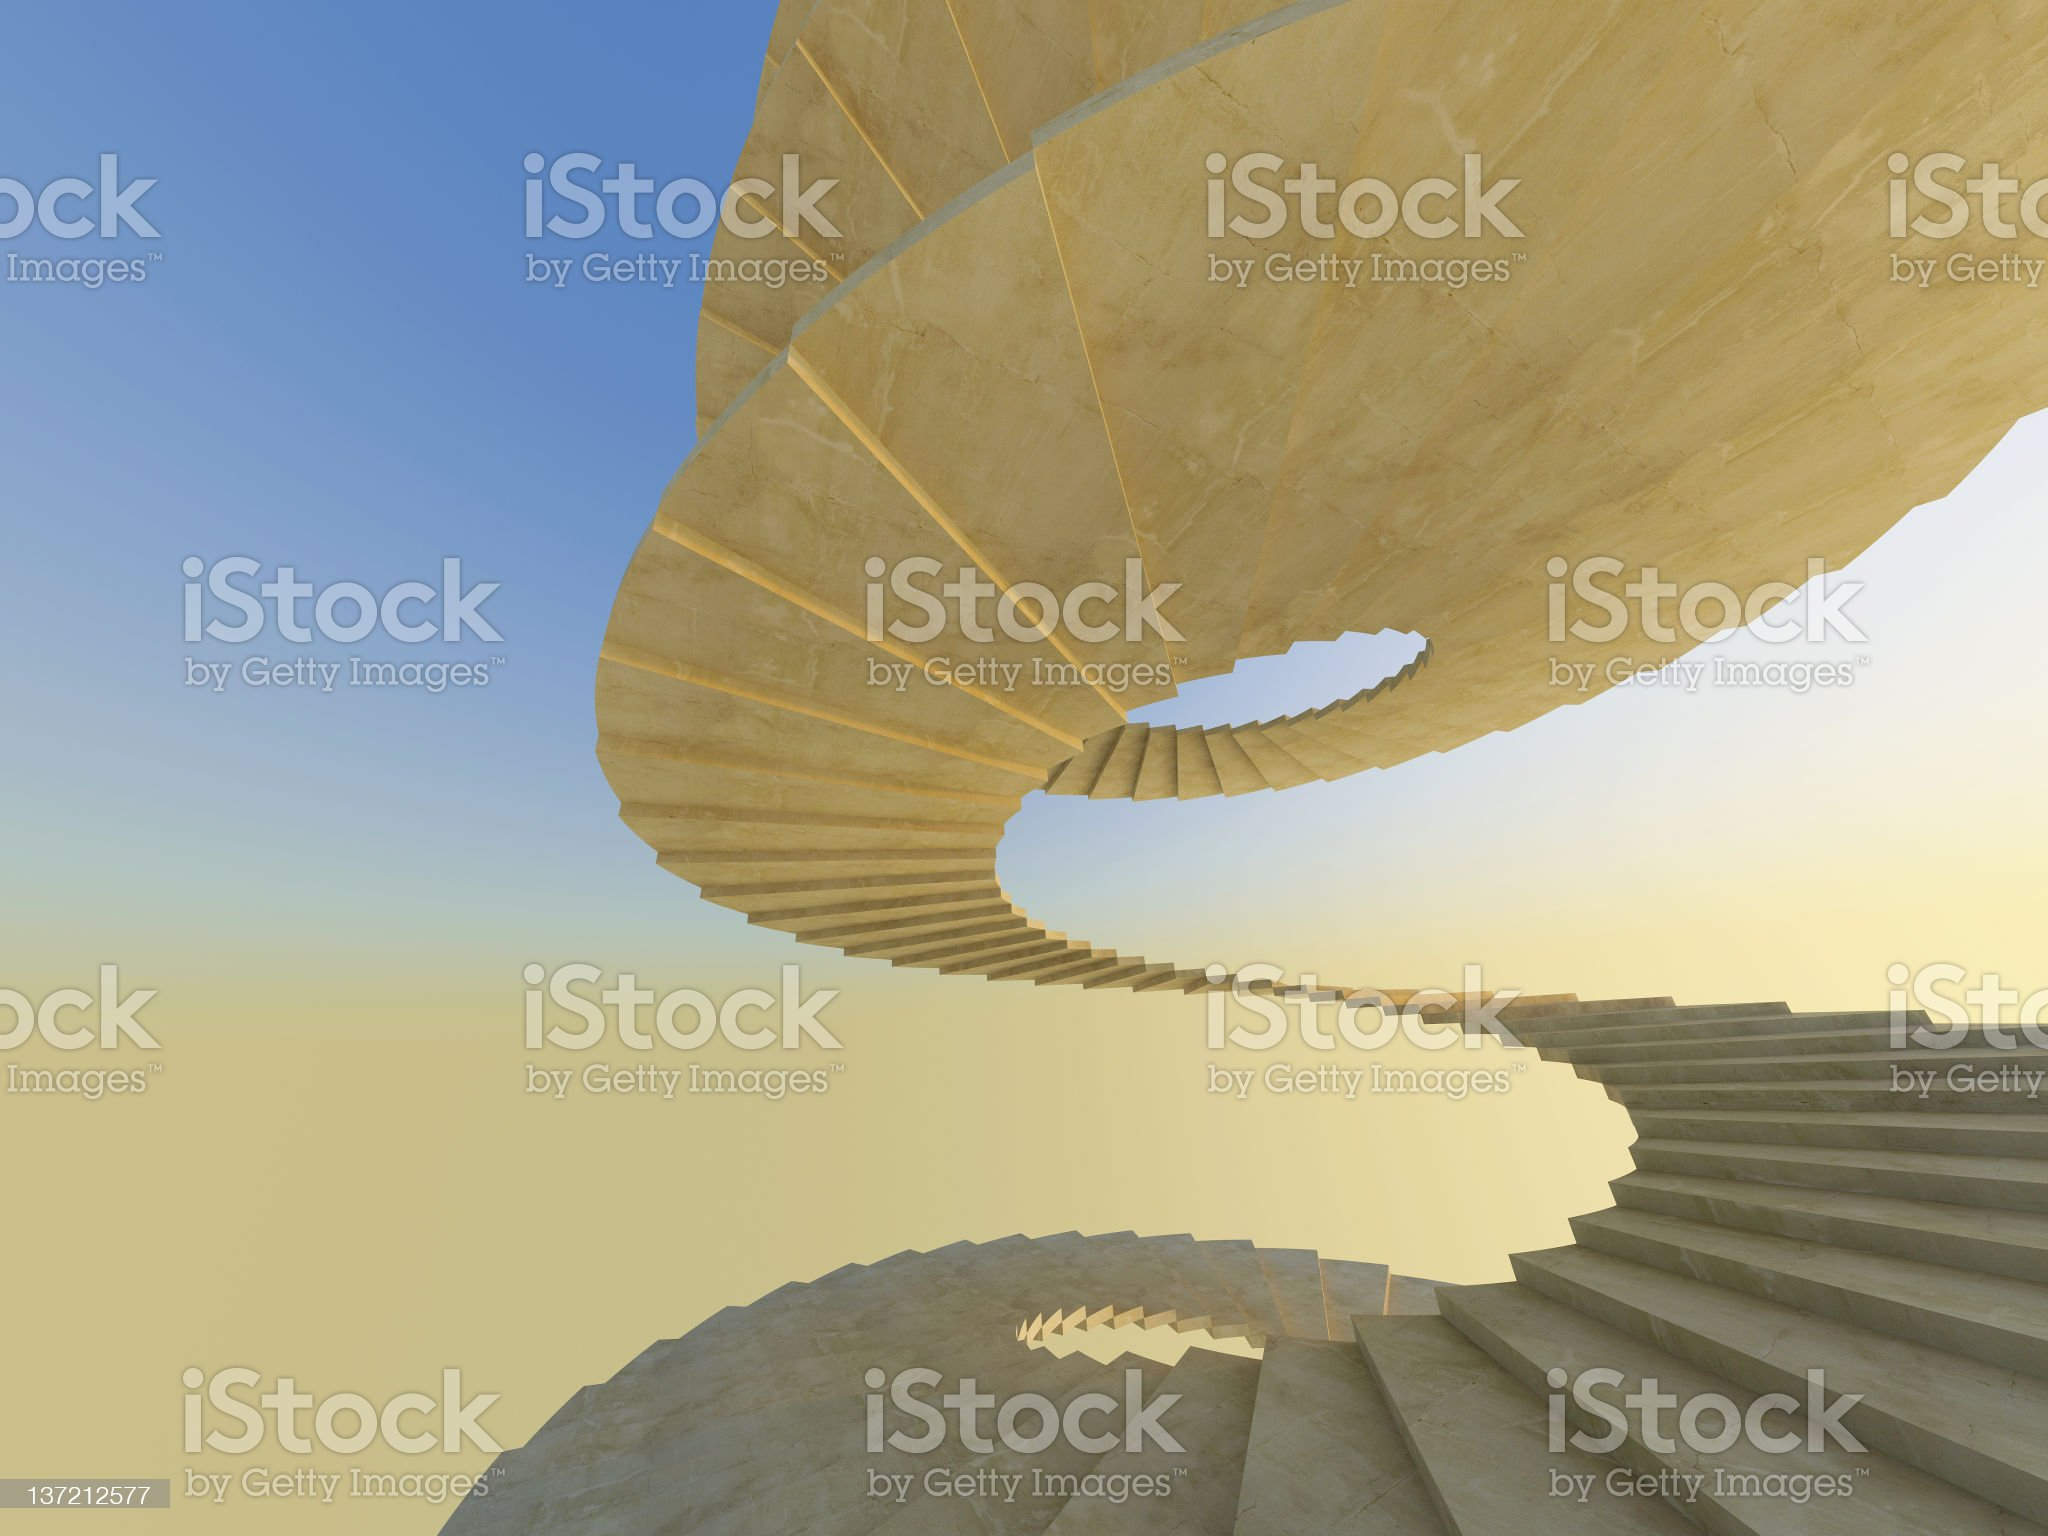 A spiral staircase in an abstract fashion royalty-free stock photo